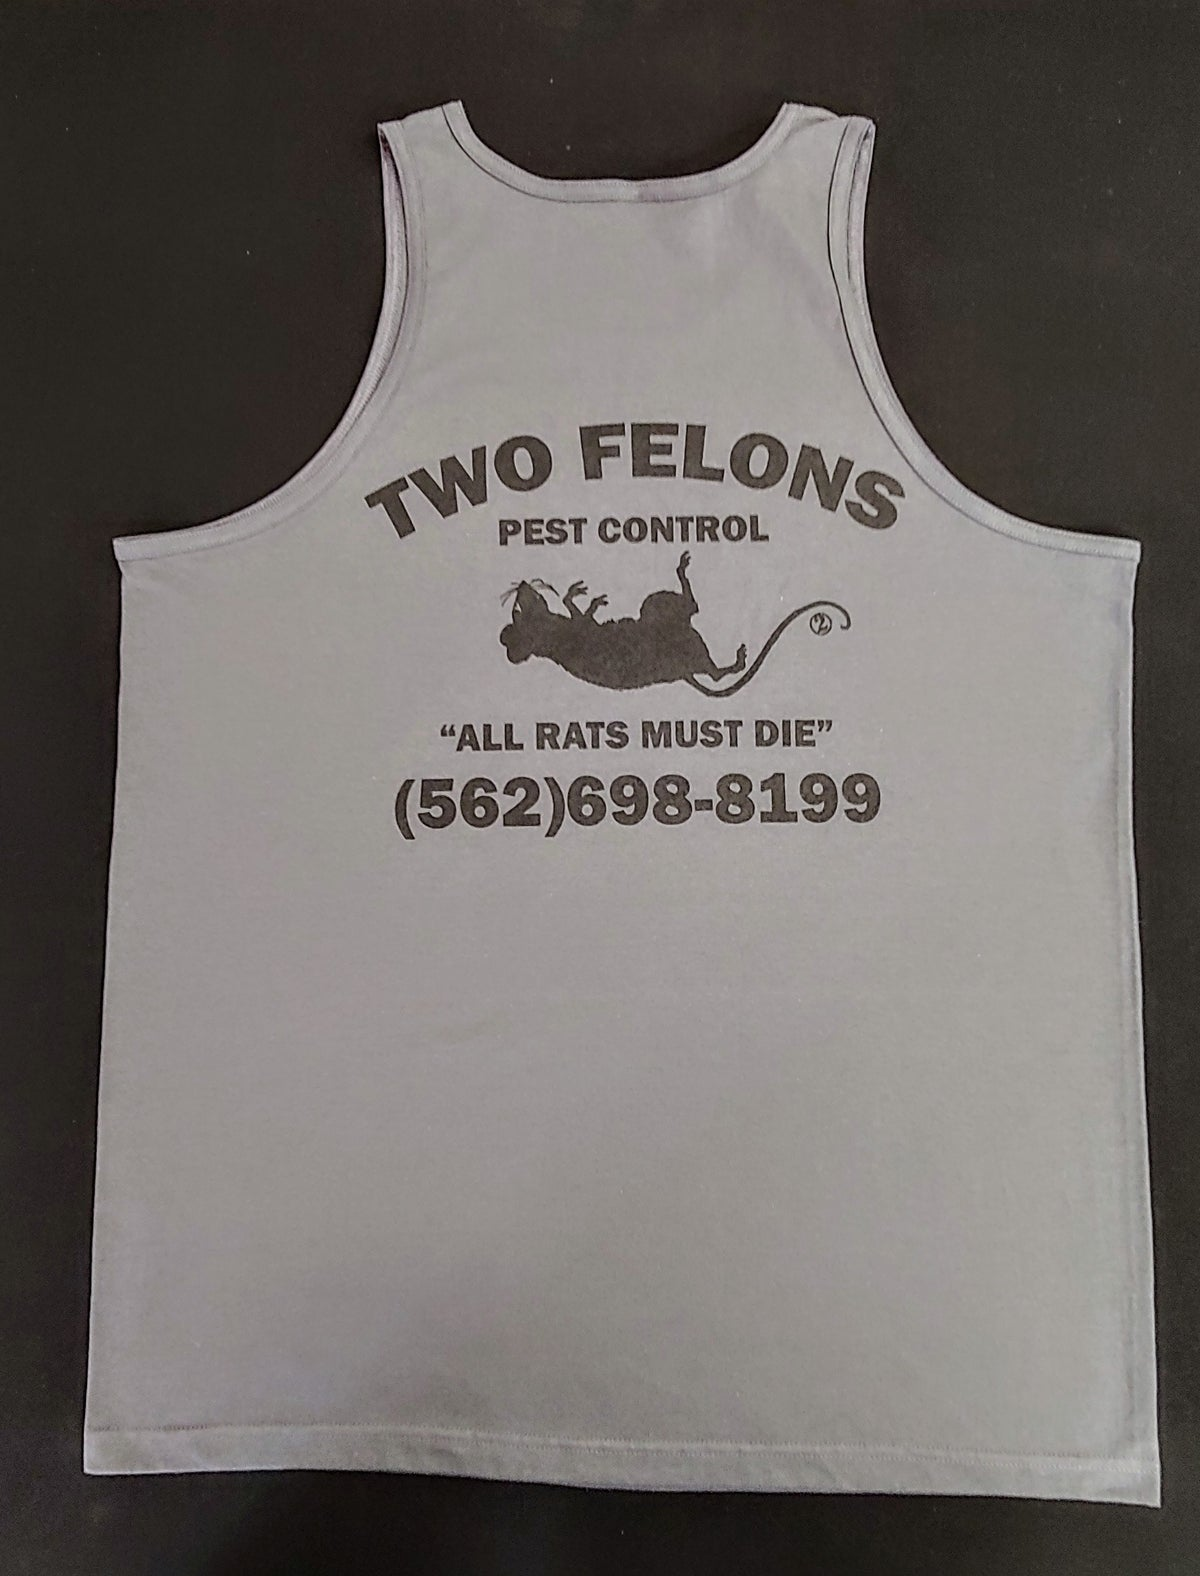 """Two Felons """"Pest Control"""" tank top (Char)"""